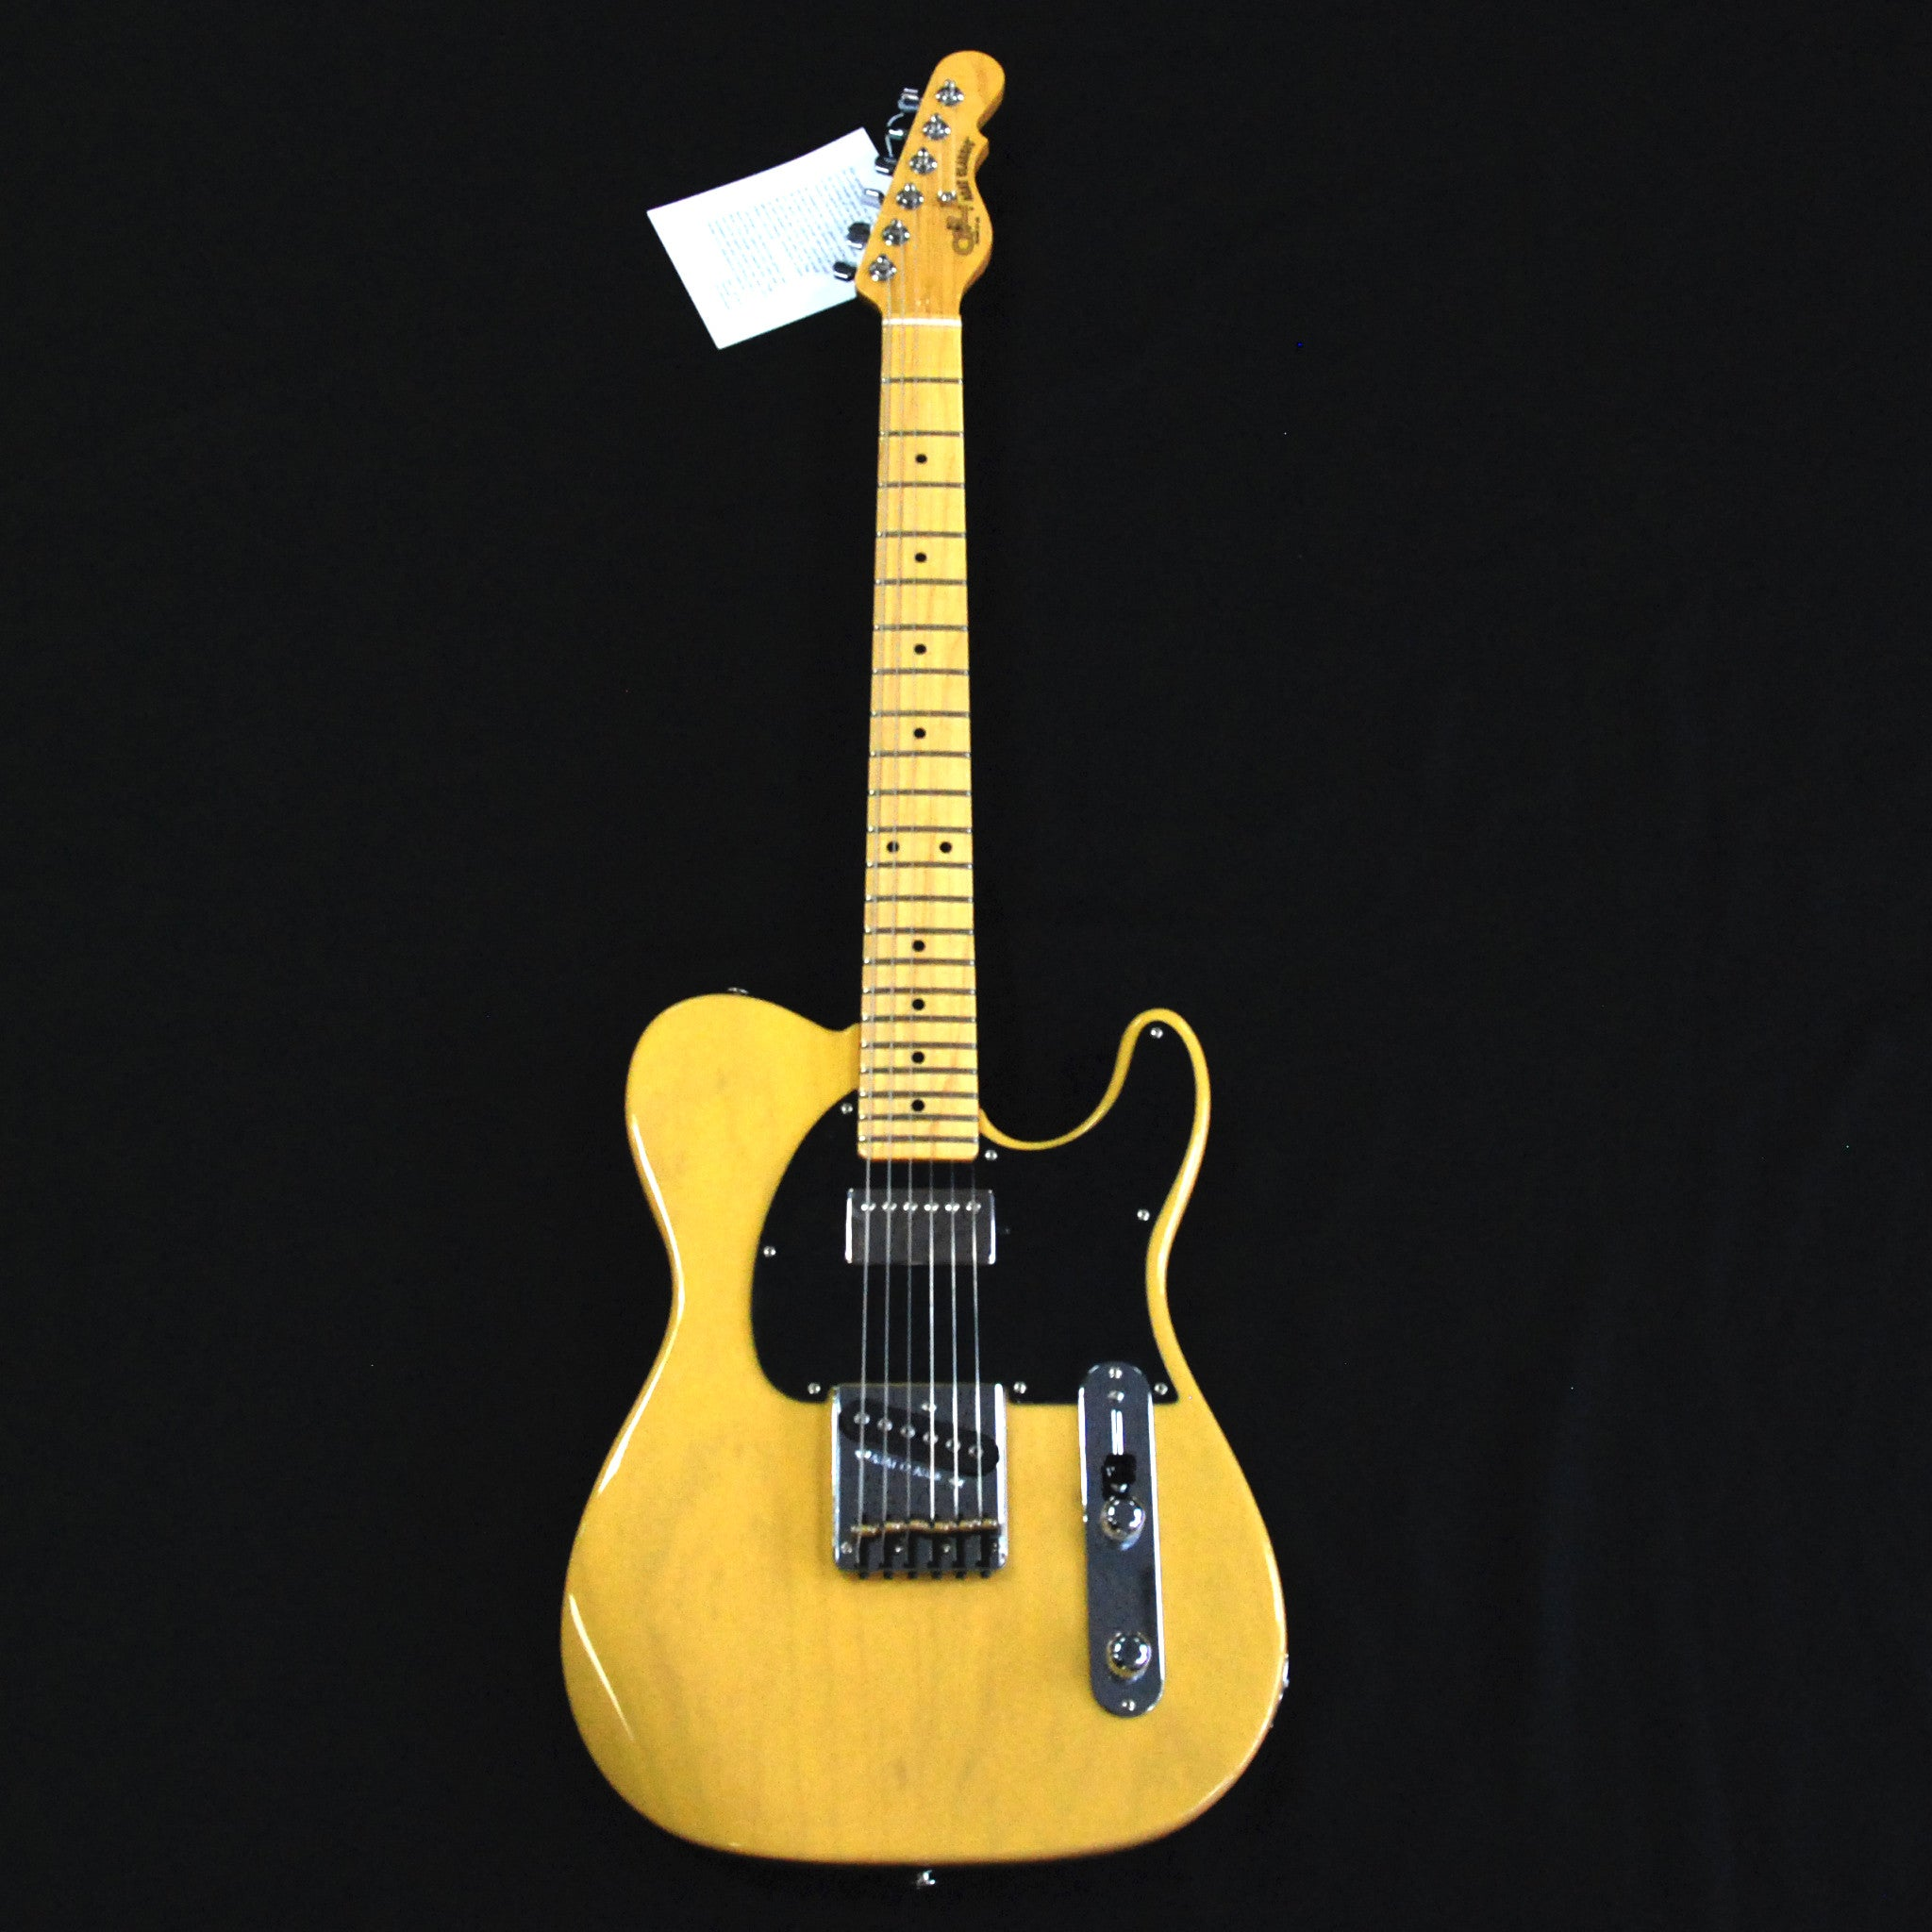 Shop online for G&L USA ASAT Classic Bluesboy Solidbody Butterscotch 75101 today.  Now available for purchase from Midlothian Music of Orland Park, Illinois, USA